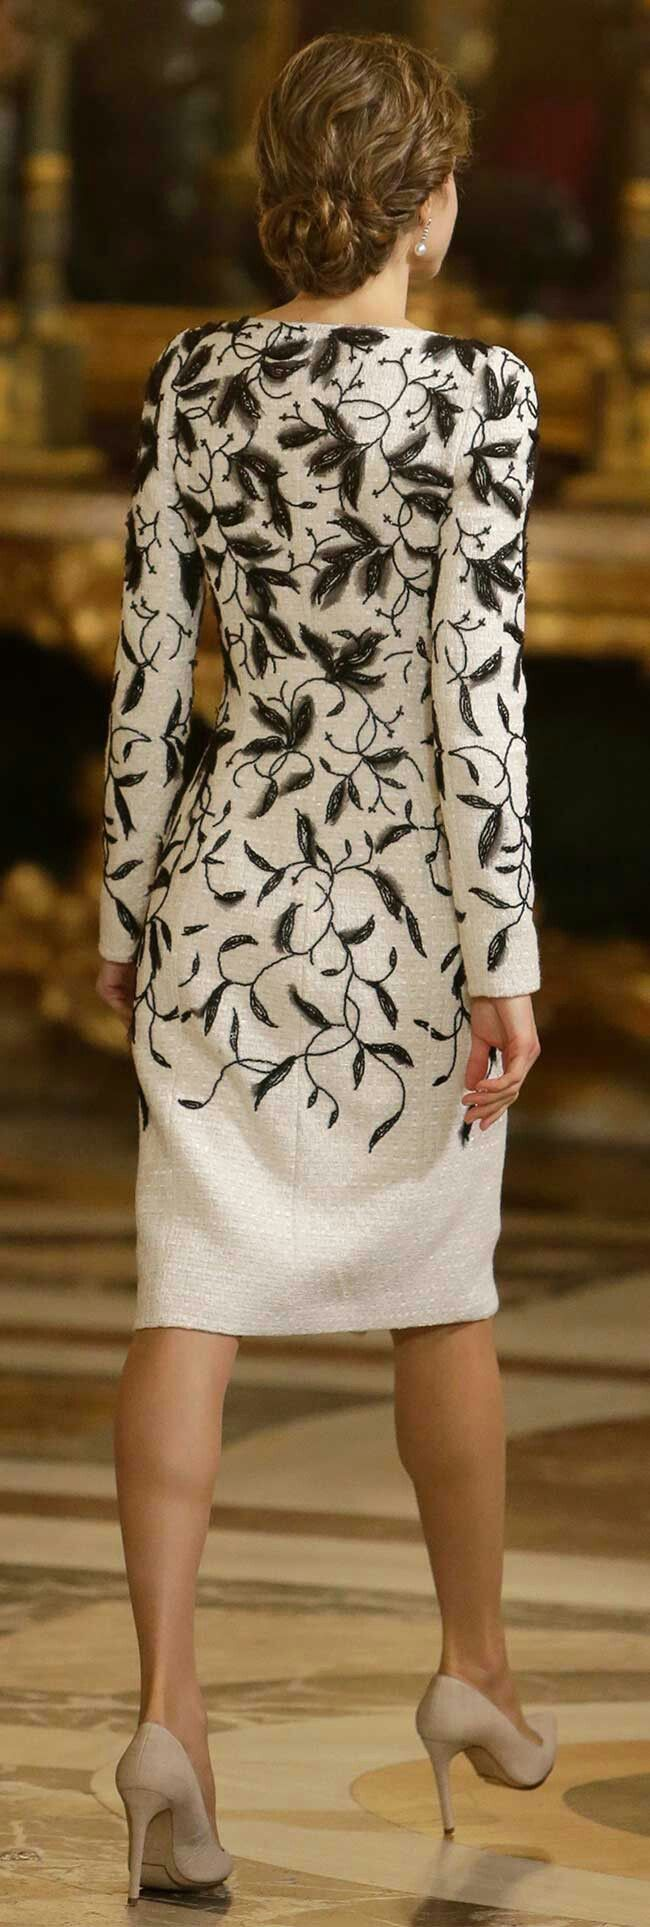 Queen Letizia - Felipe Varela white tweed coat dress with black hand embroidered crystal and georgette. Back